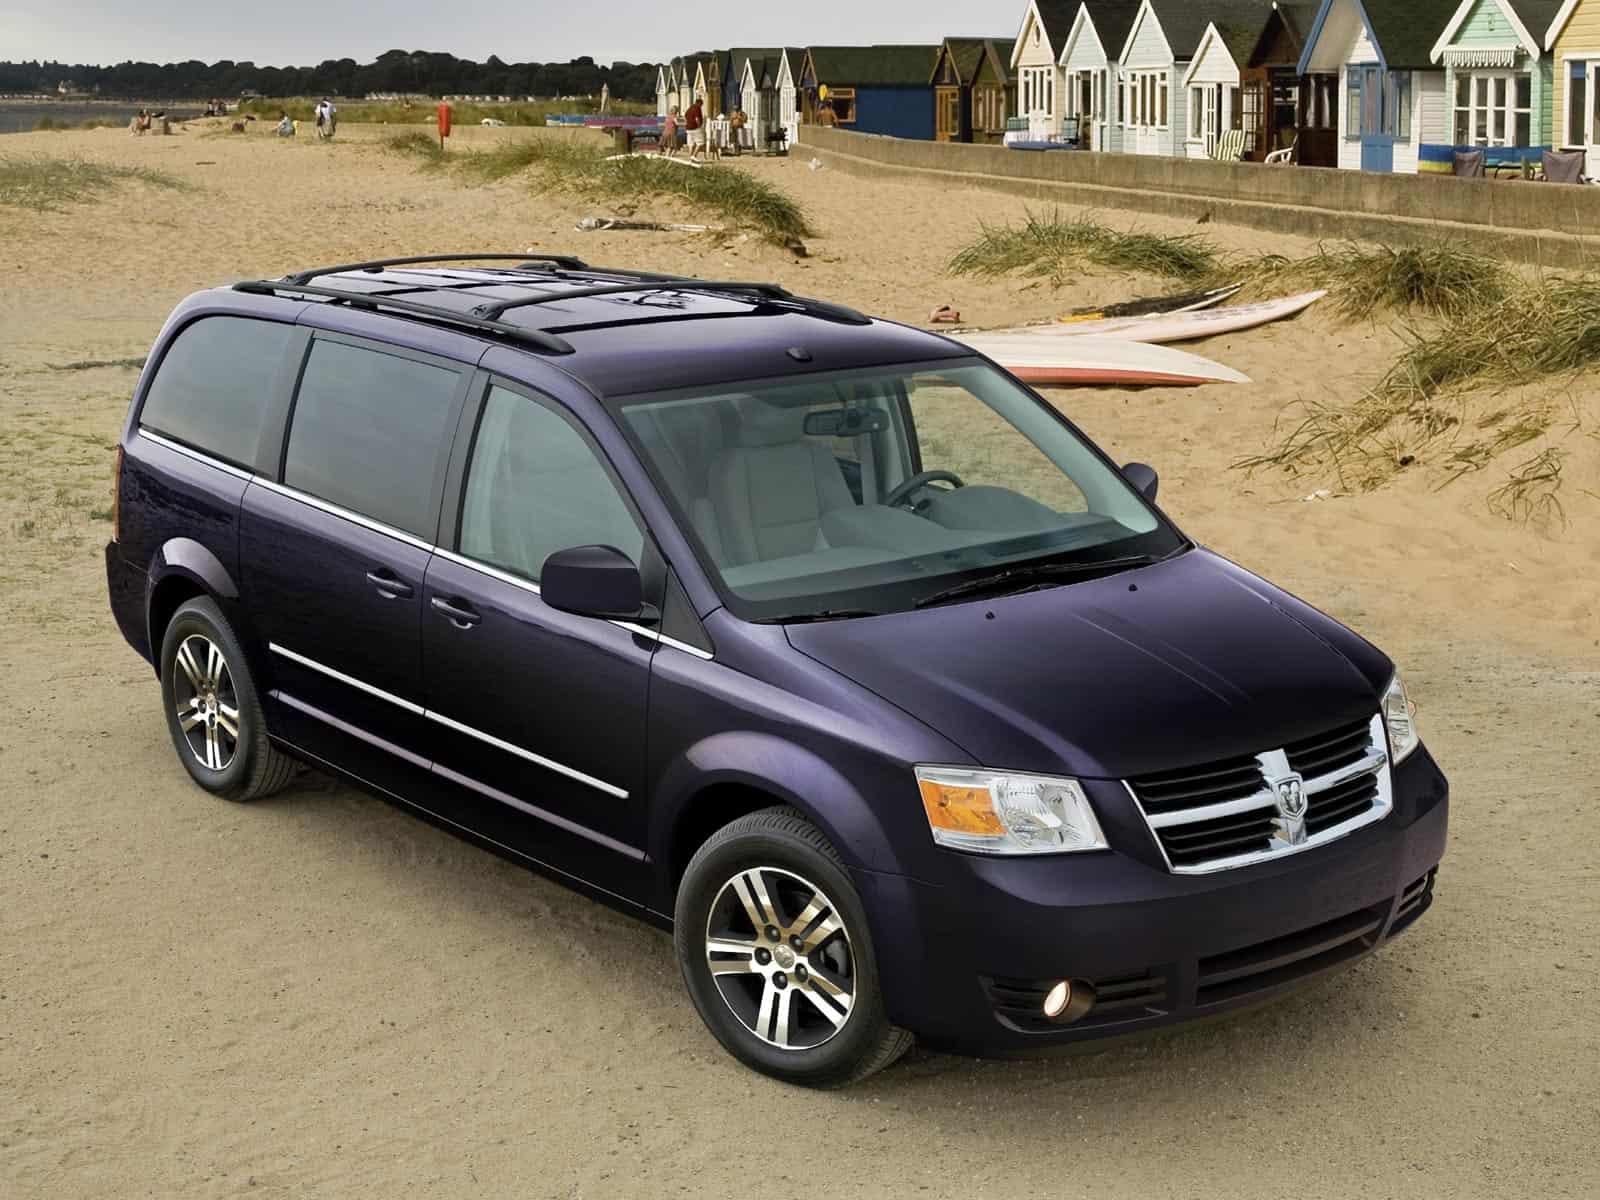 Dodge Grand Caravans are reliable cars under 5000